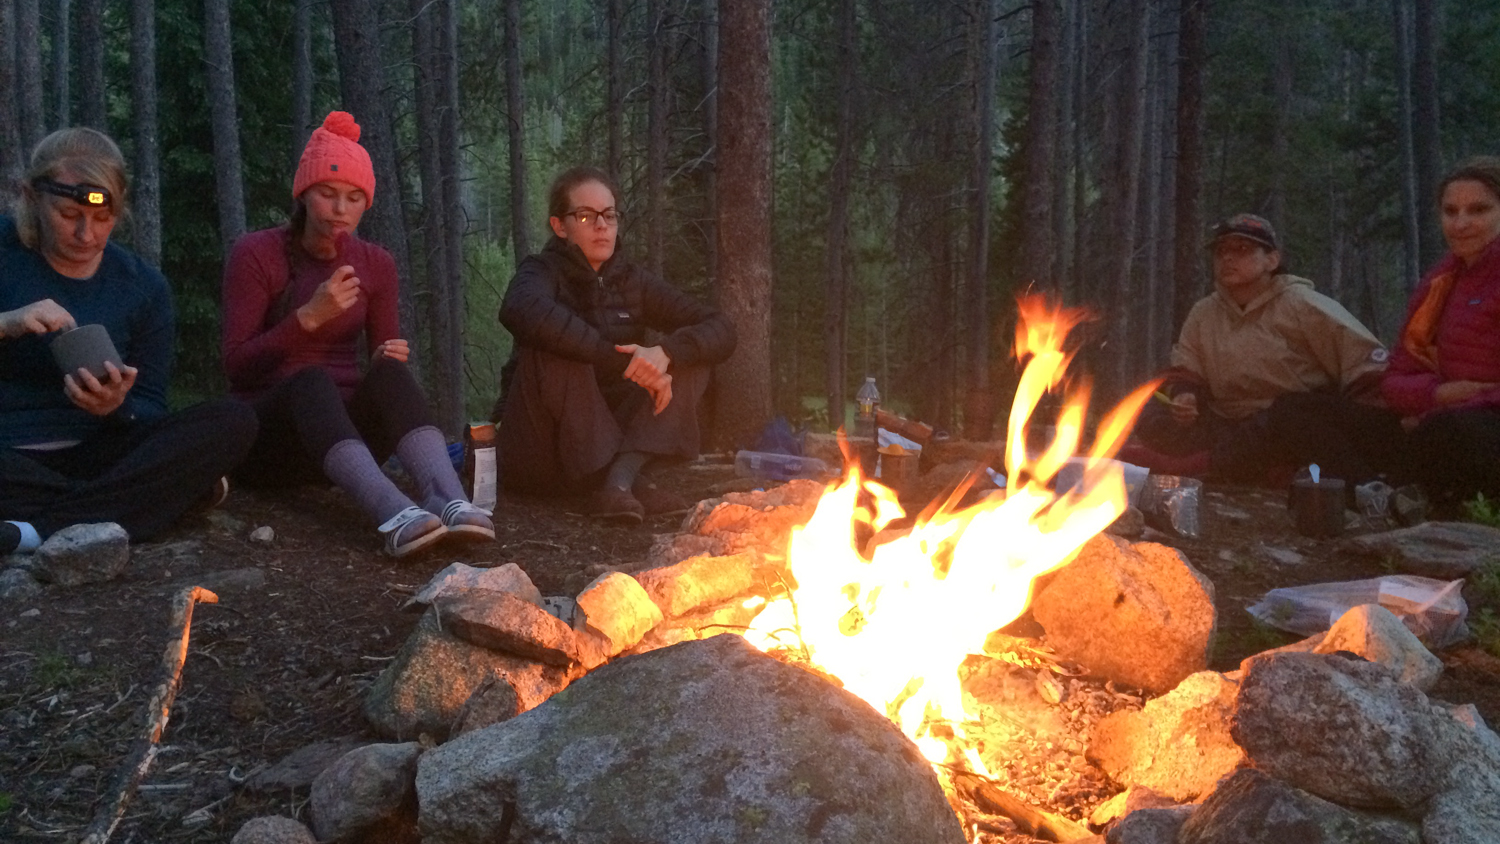 Everyone collected wood and I taught them how to make a proper fire. Rachael (the one in that cute beanie) did an awesome job of stoking the fire and keeping it ablaze. We sat here to have dinner and relax after day one.